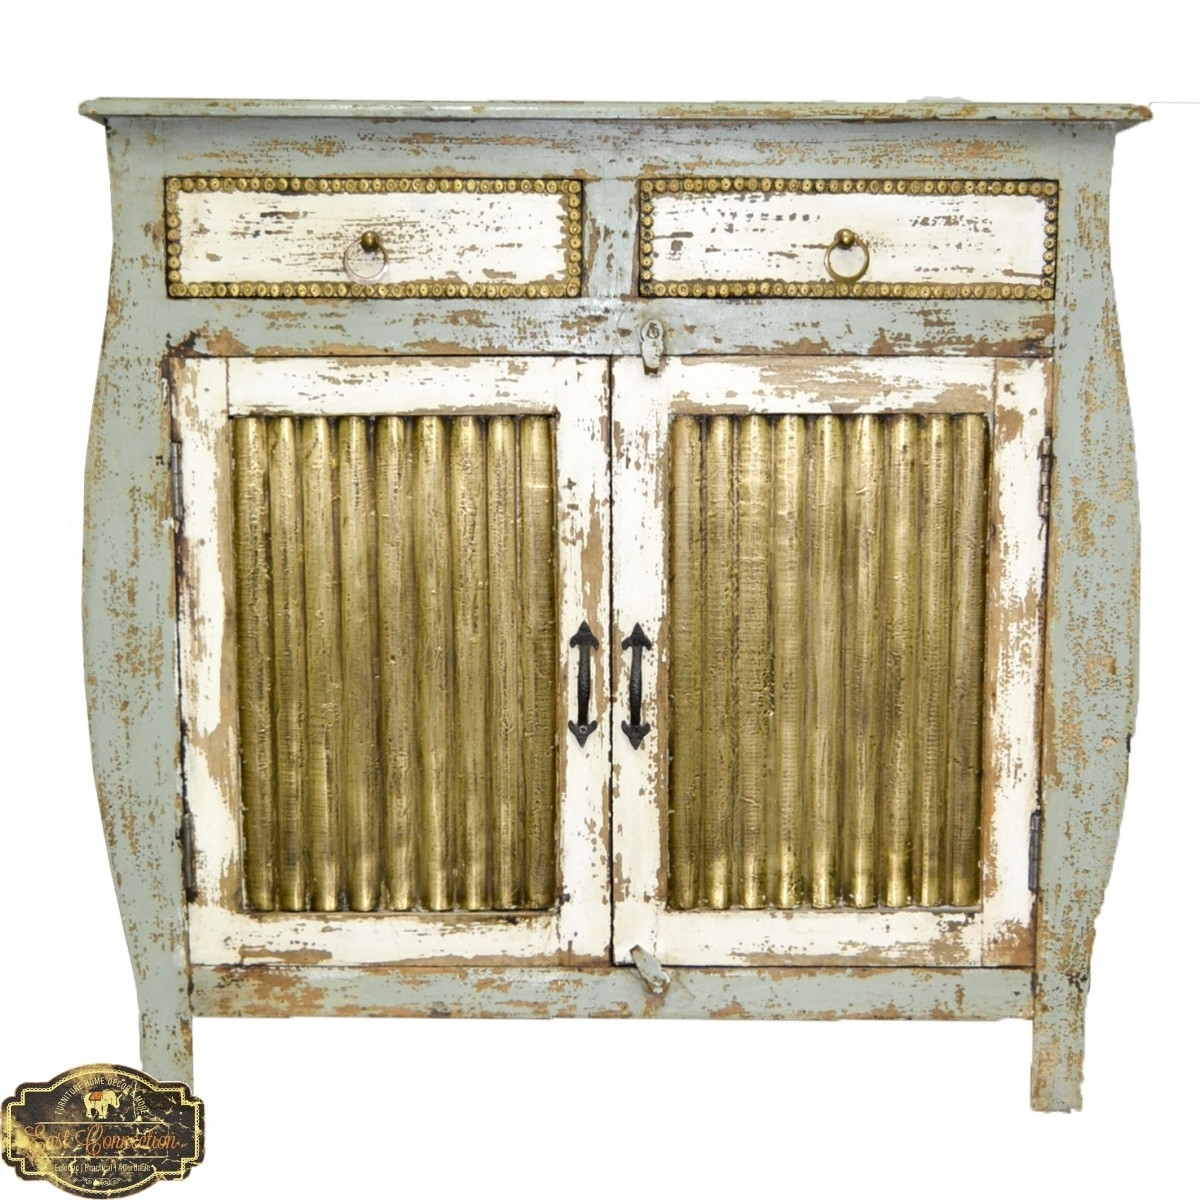 Indian Furniture, Bohemian Furniture & Distressed Furniture | East with regard to Corrugated Metal Sideboards (Image 10 of 30)